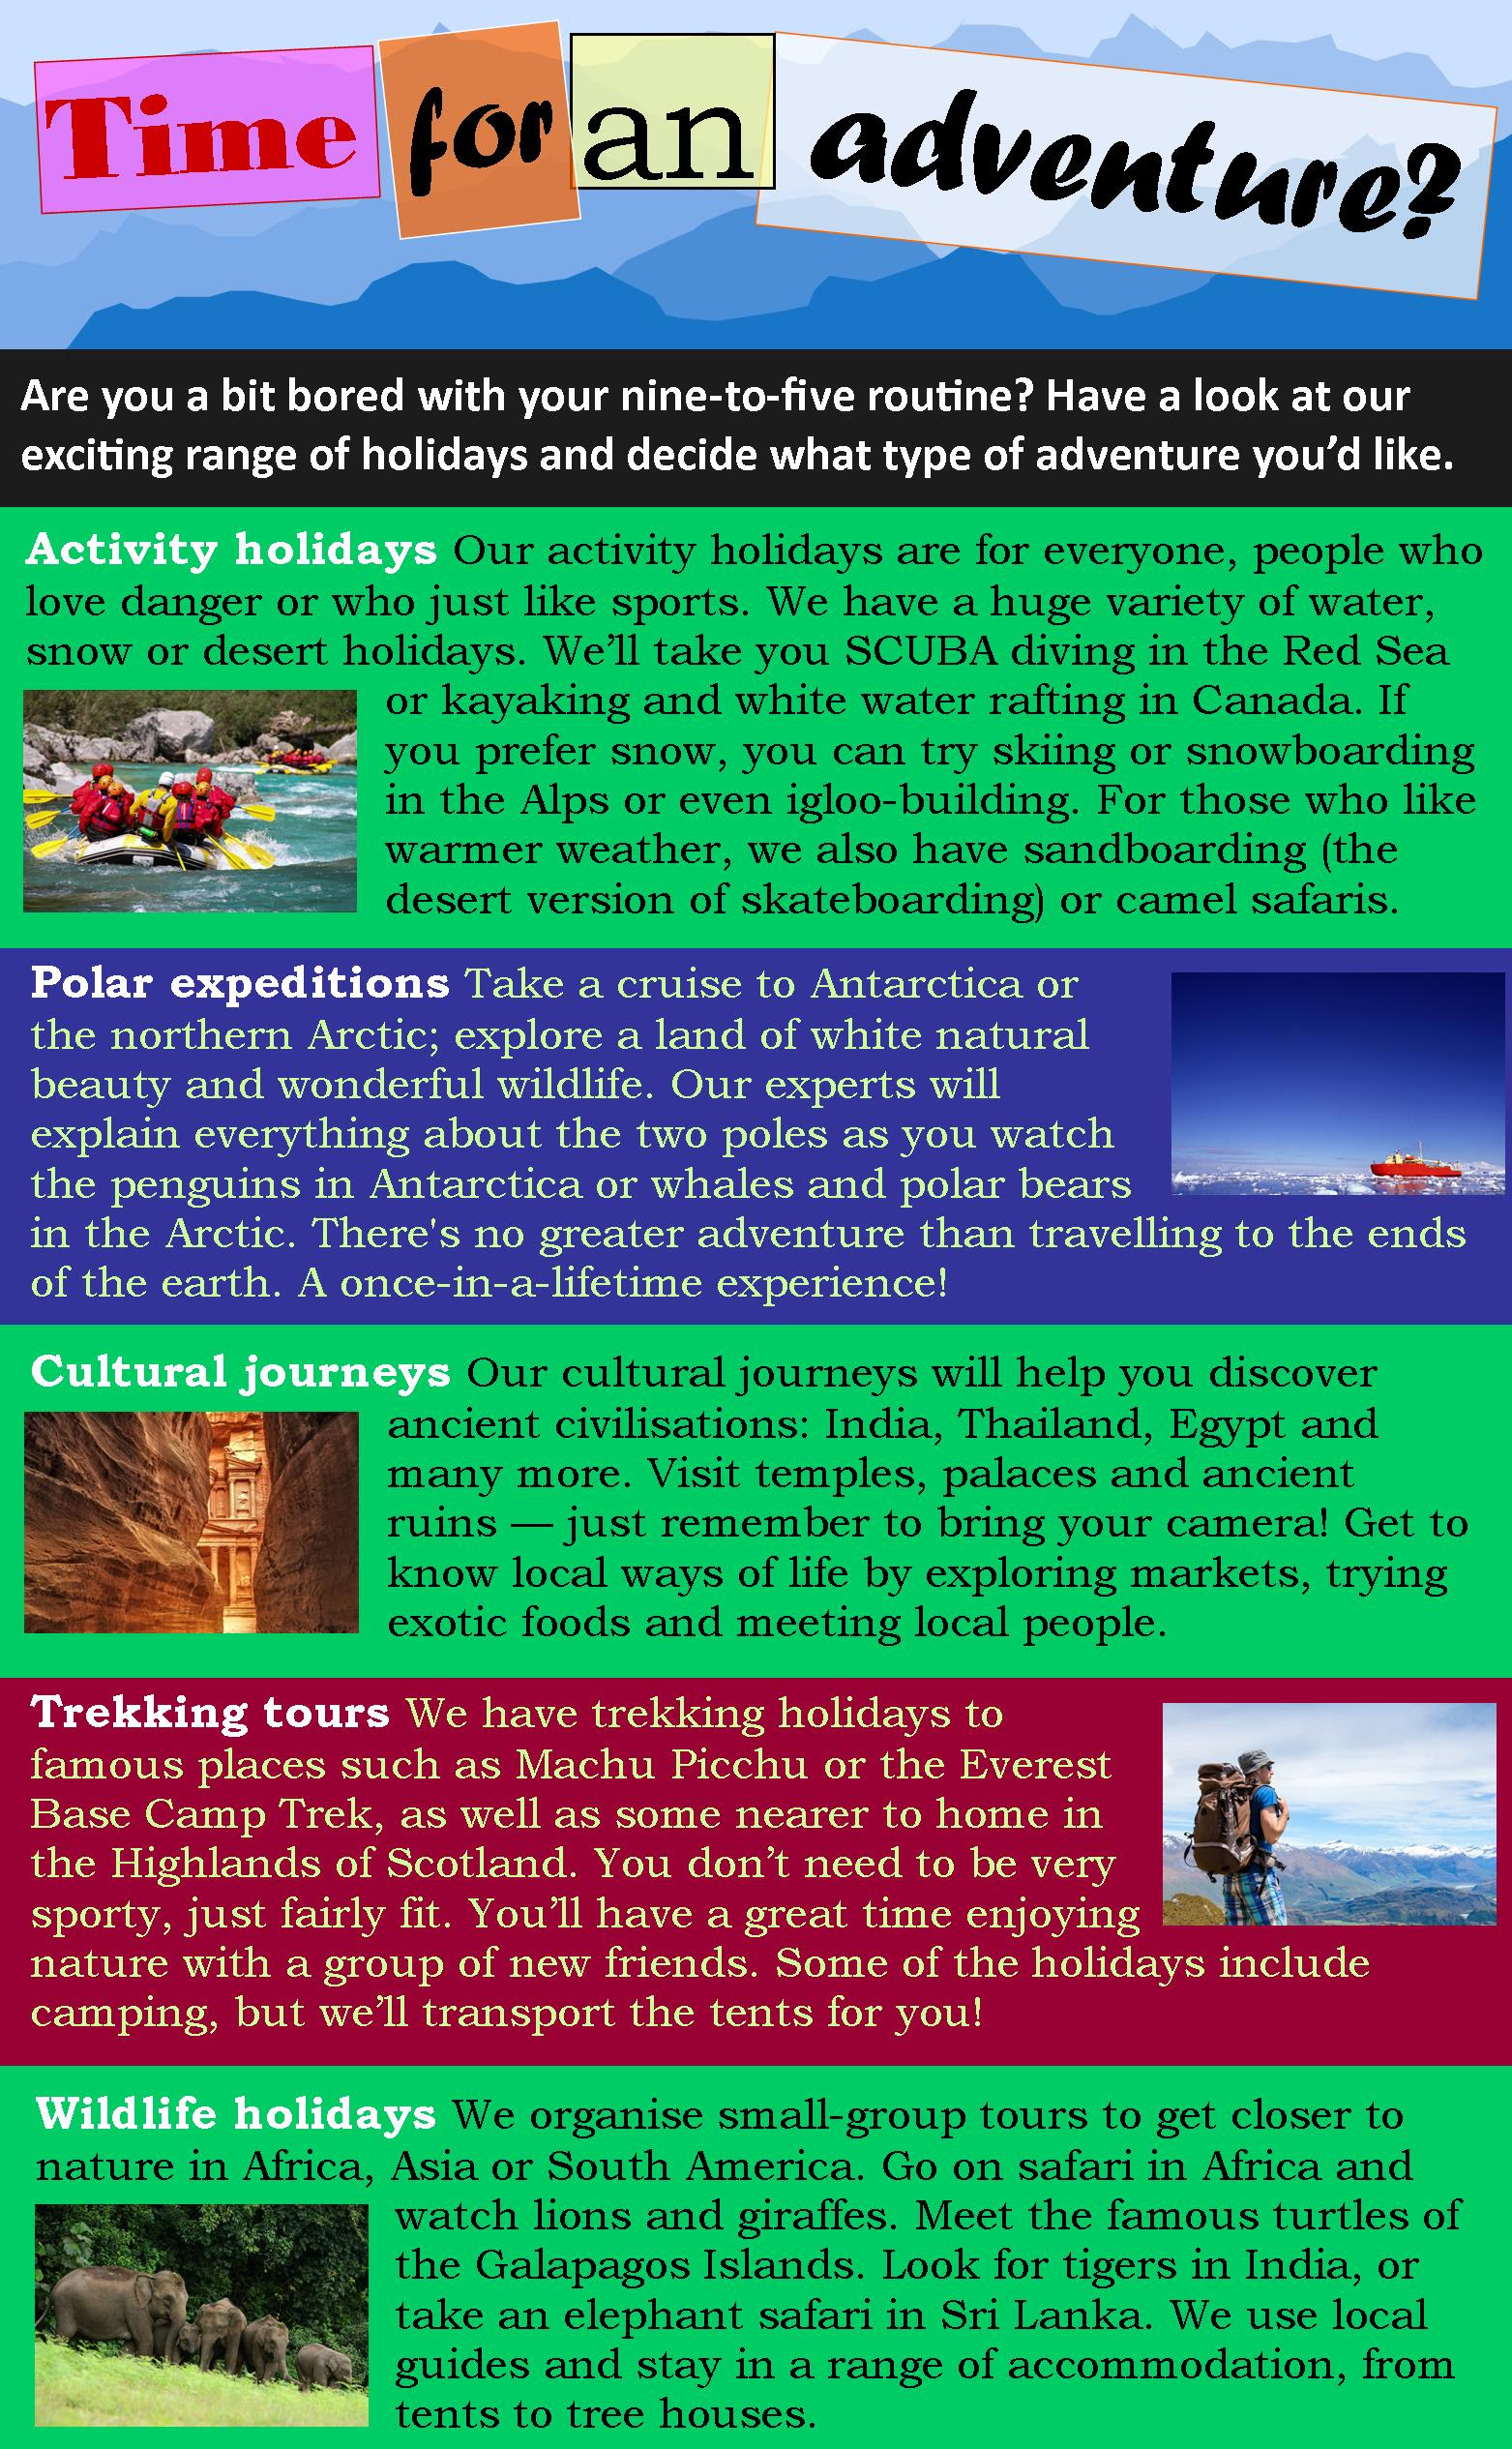 Adventure travel | LearnEnglish Teens - British Council